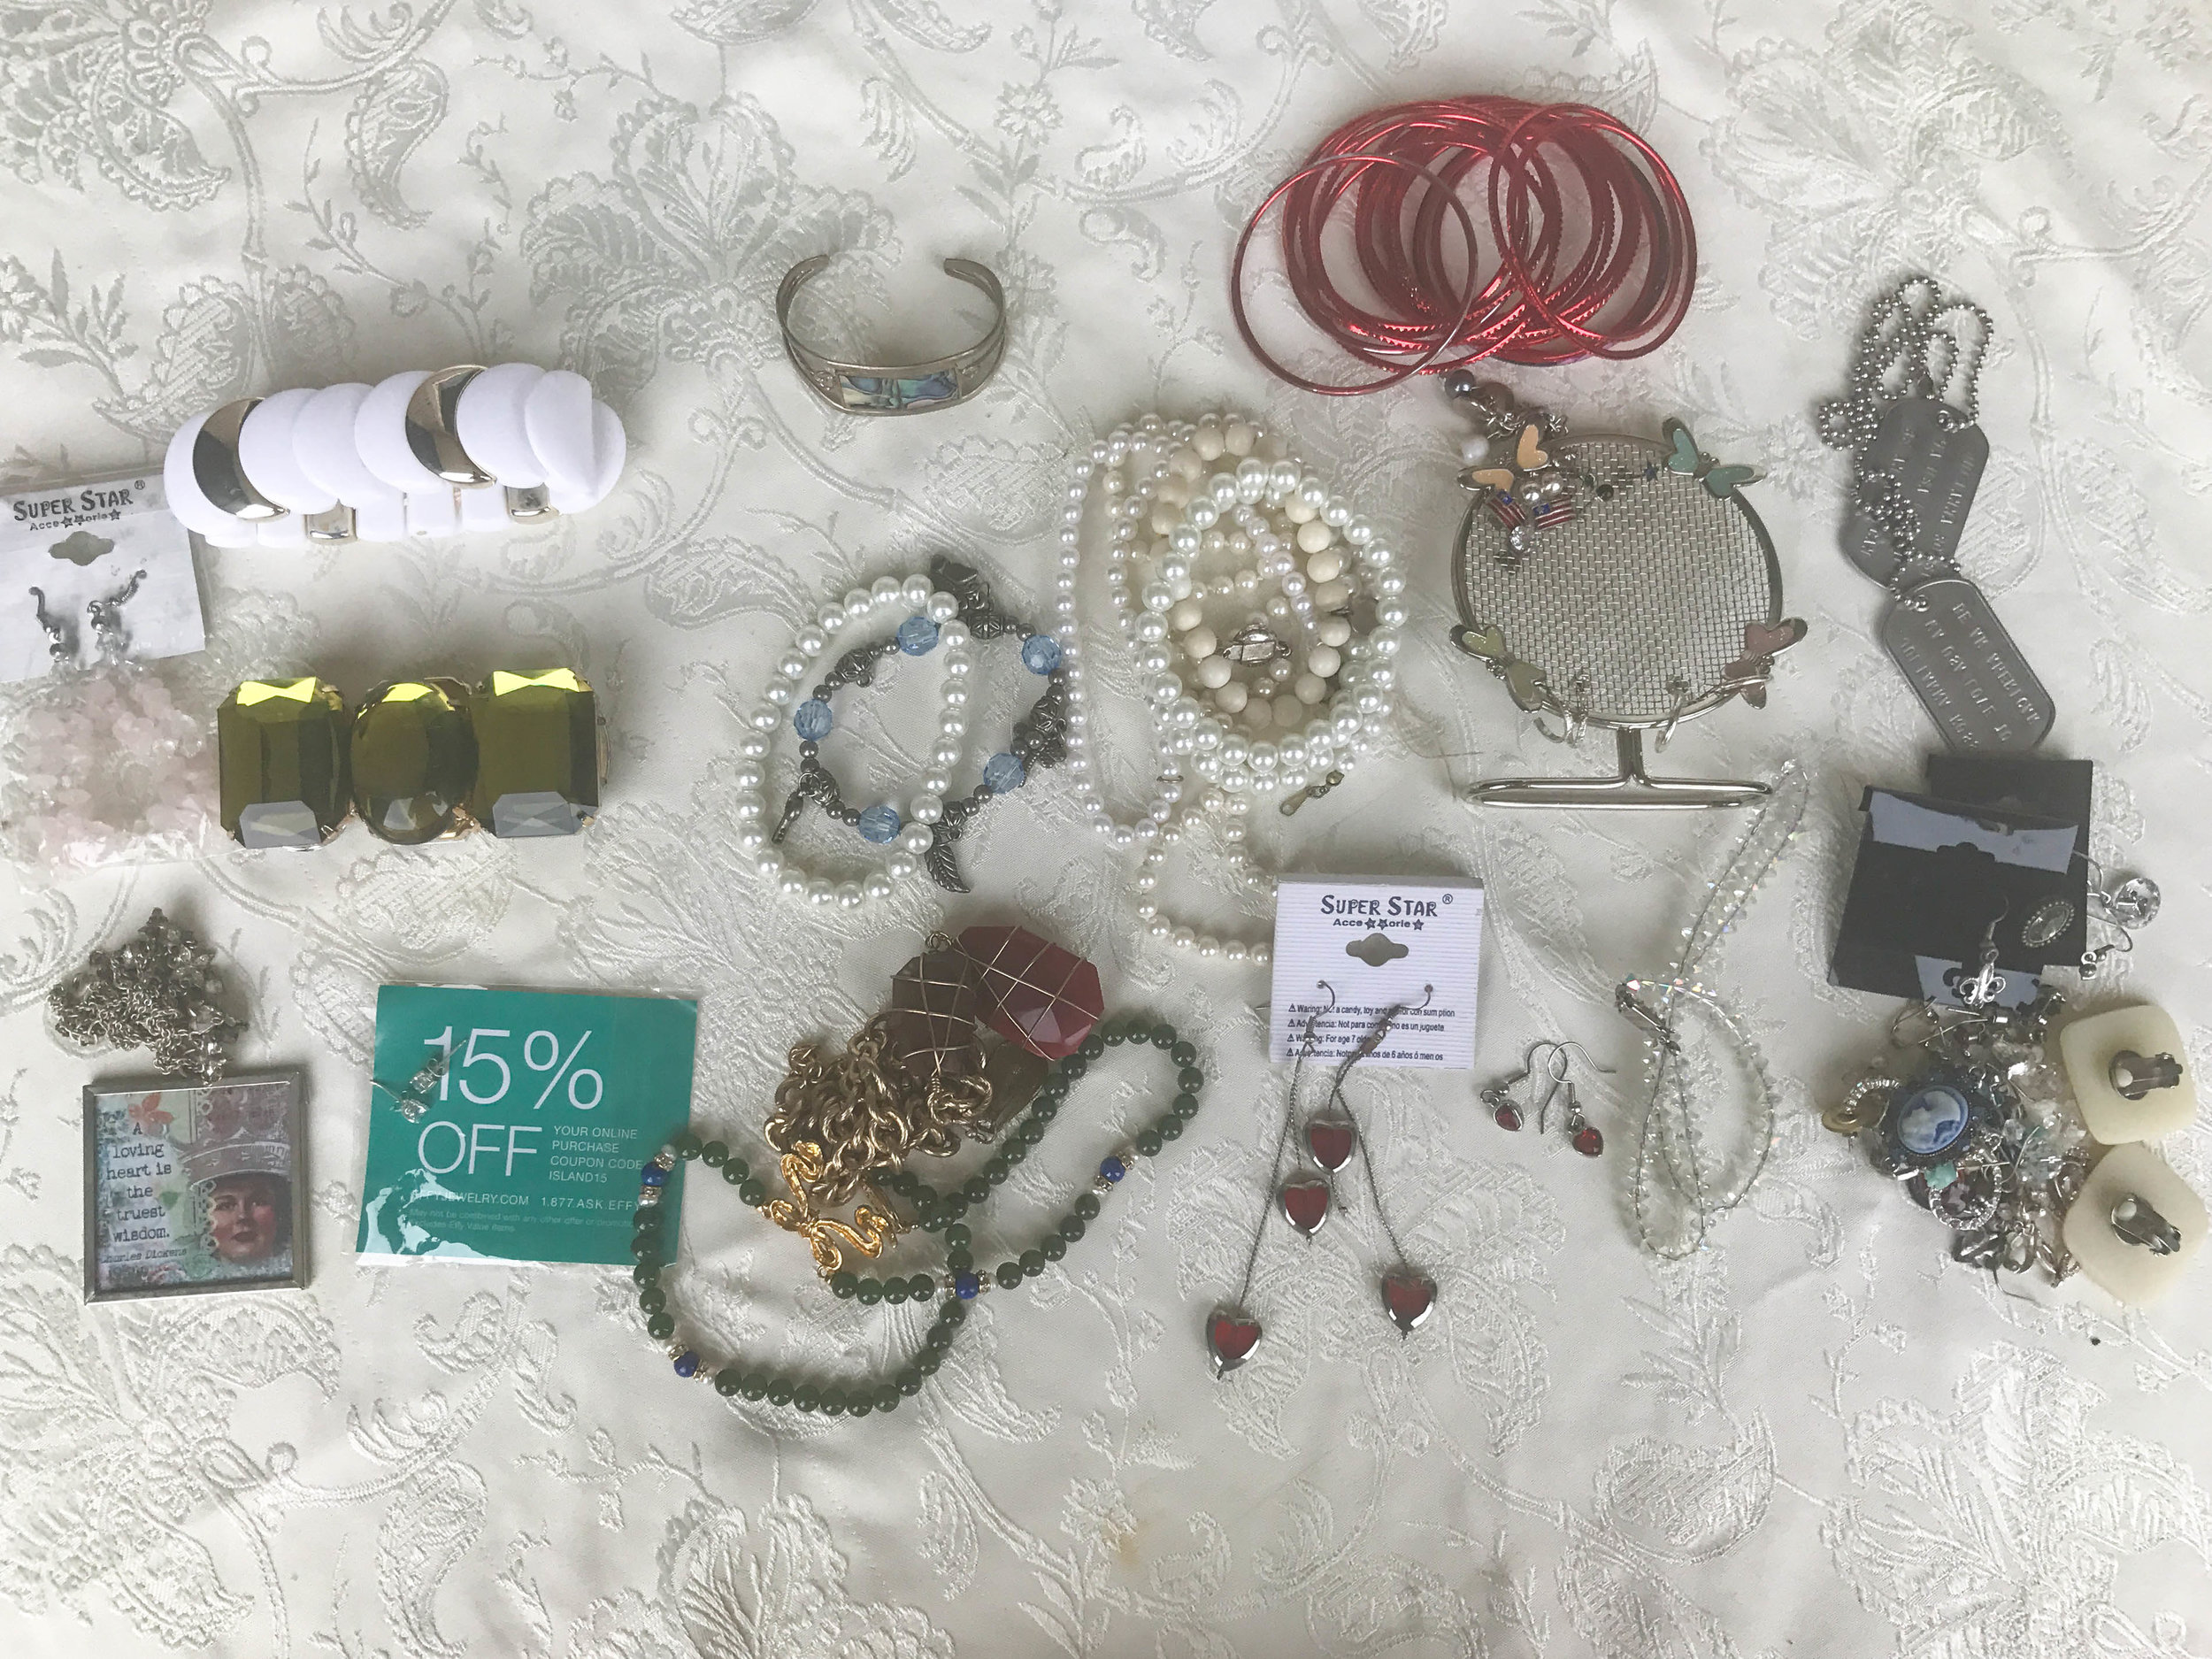 This is everything that I am getting rid of. Many of the earrings on the bottom right don't have matches so many of those will be thrown away. As for the things in good order I will try to donate those.